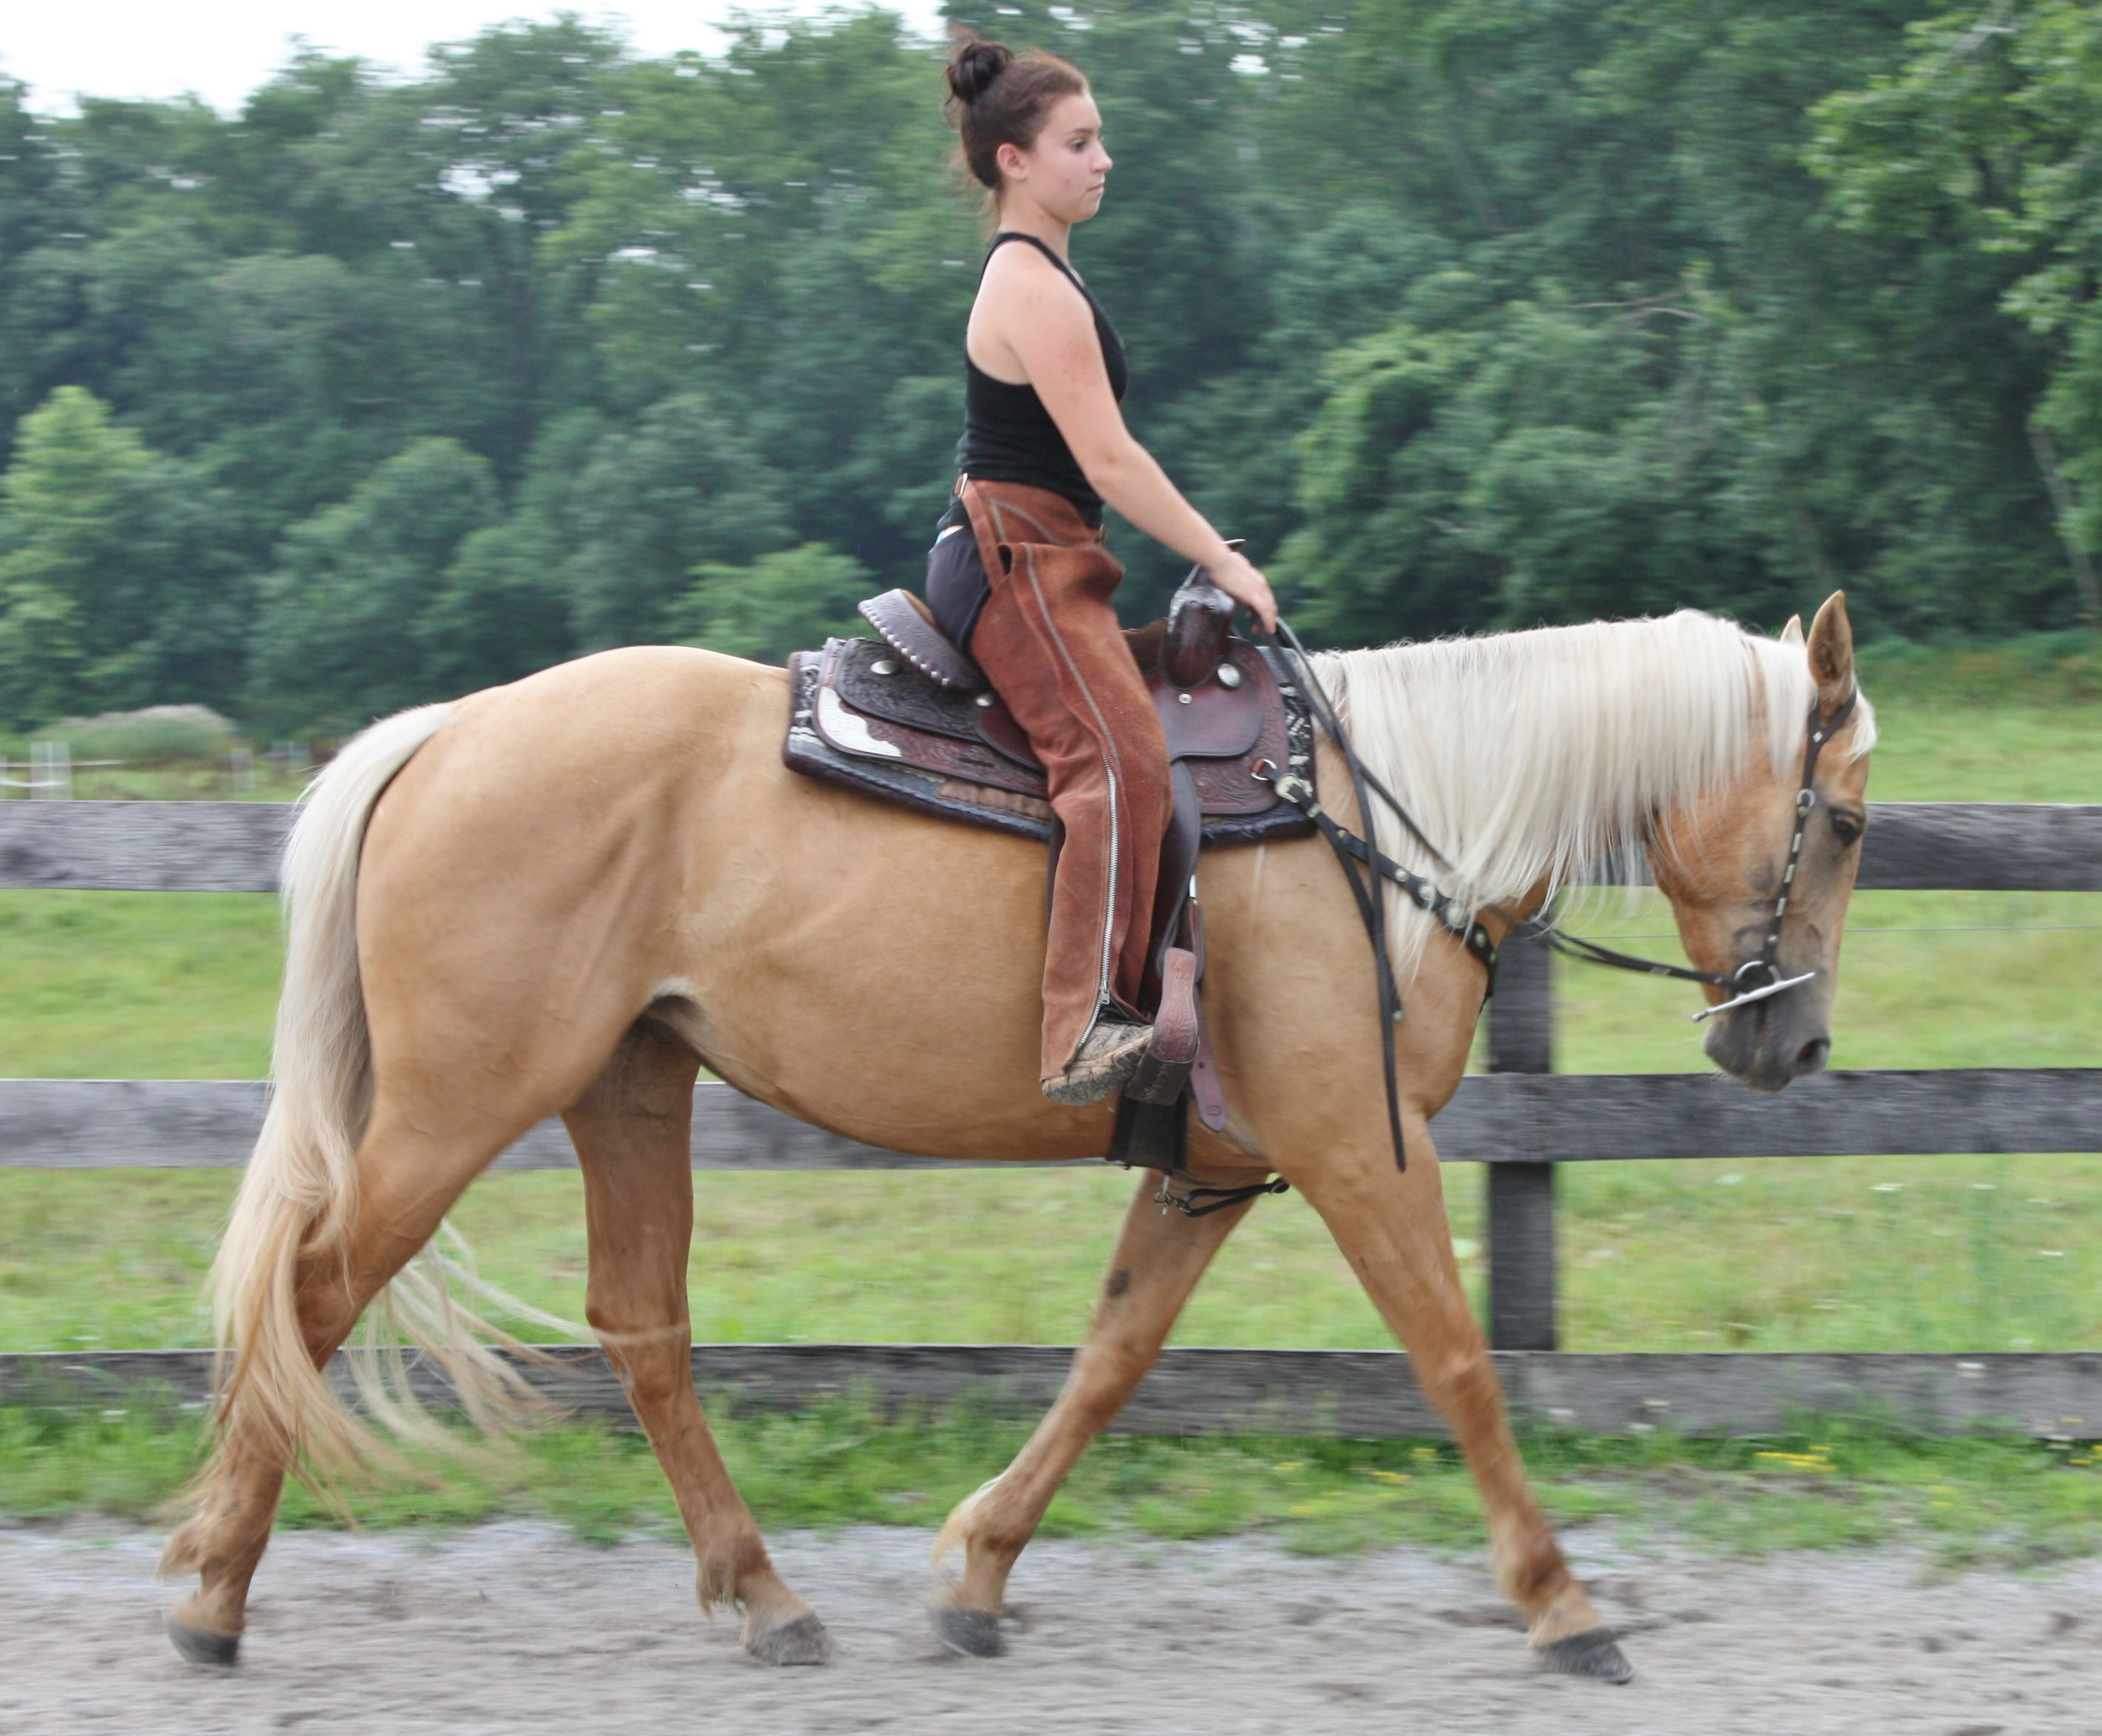 Riding Horses For Sale In Pennsylvania